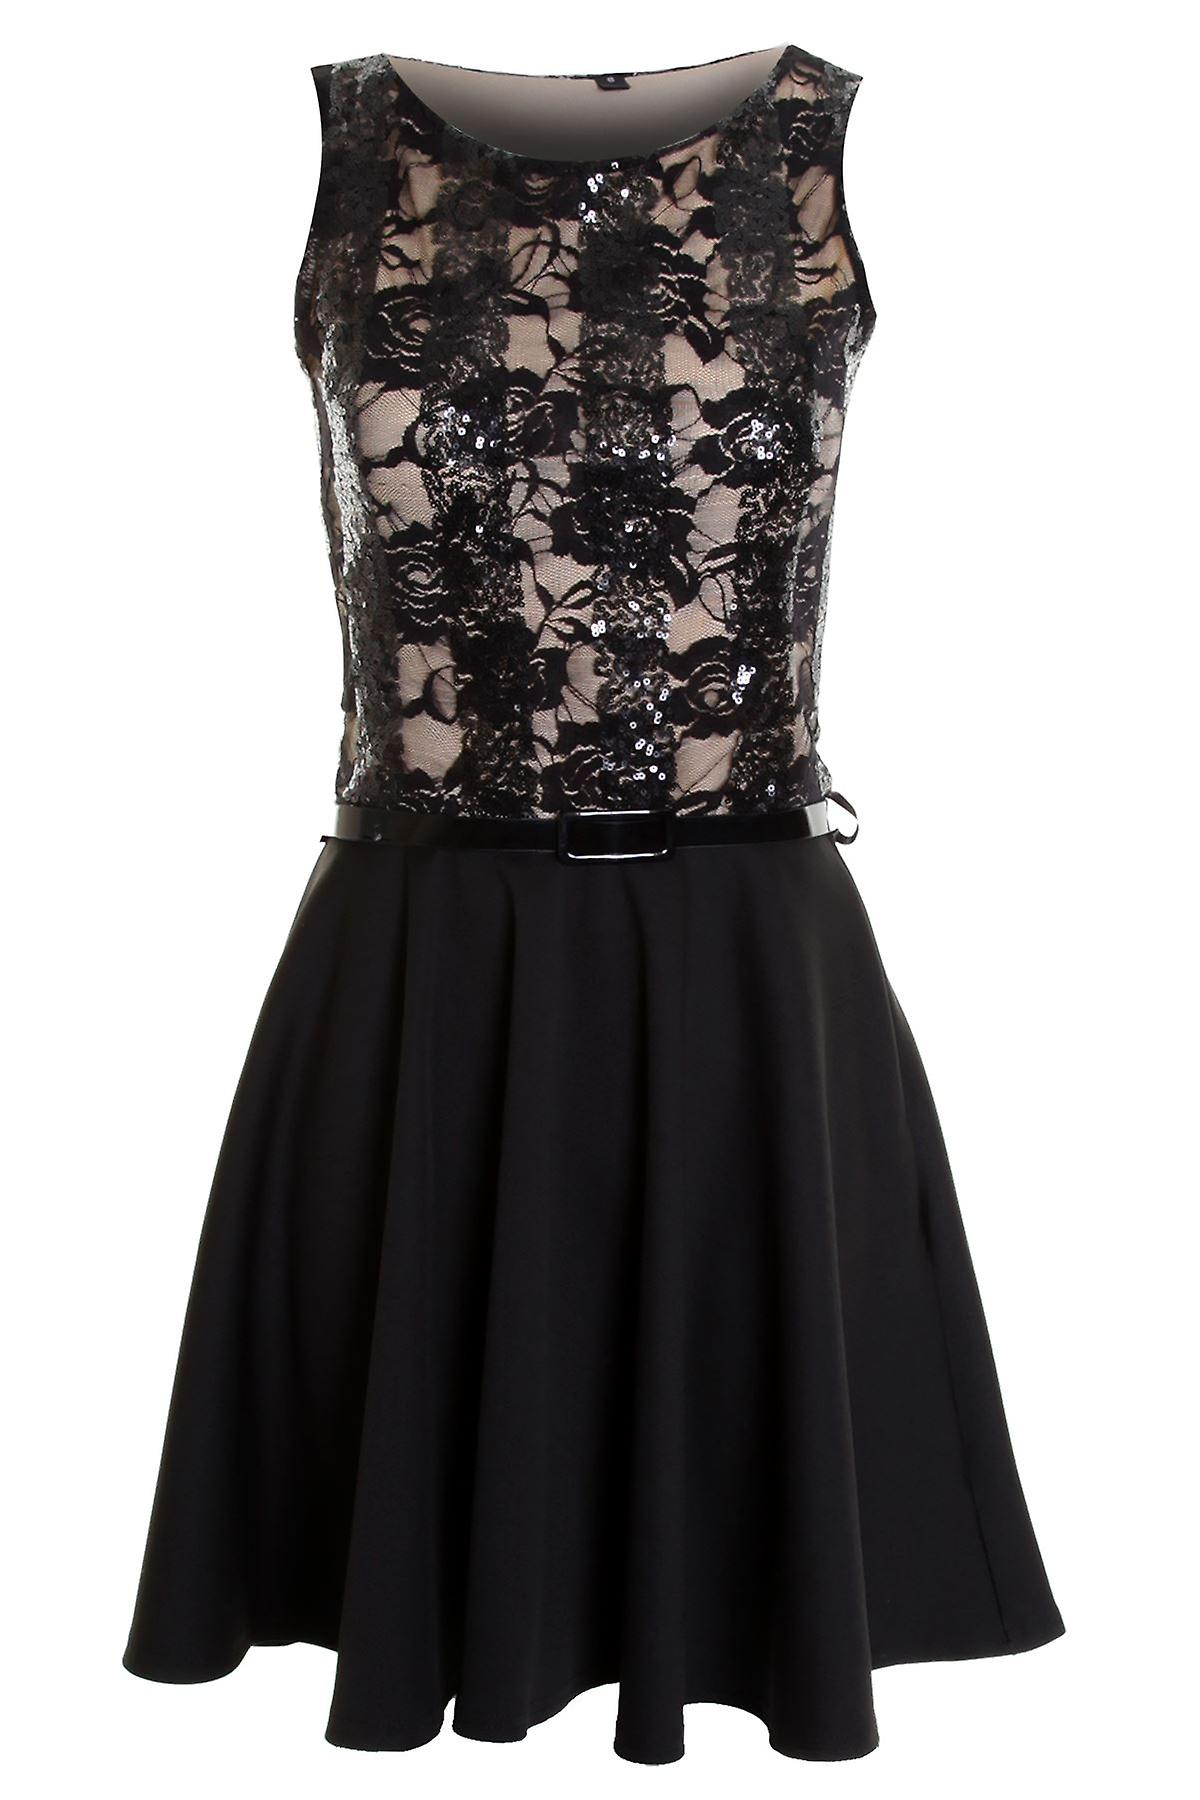 Ladies Sleeveless Belted Sequin Lined Floral Lace Women's Skater Dress